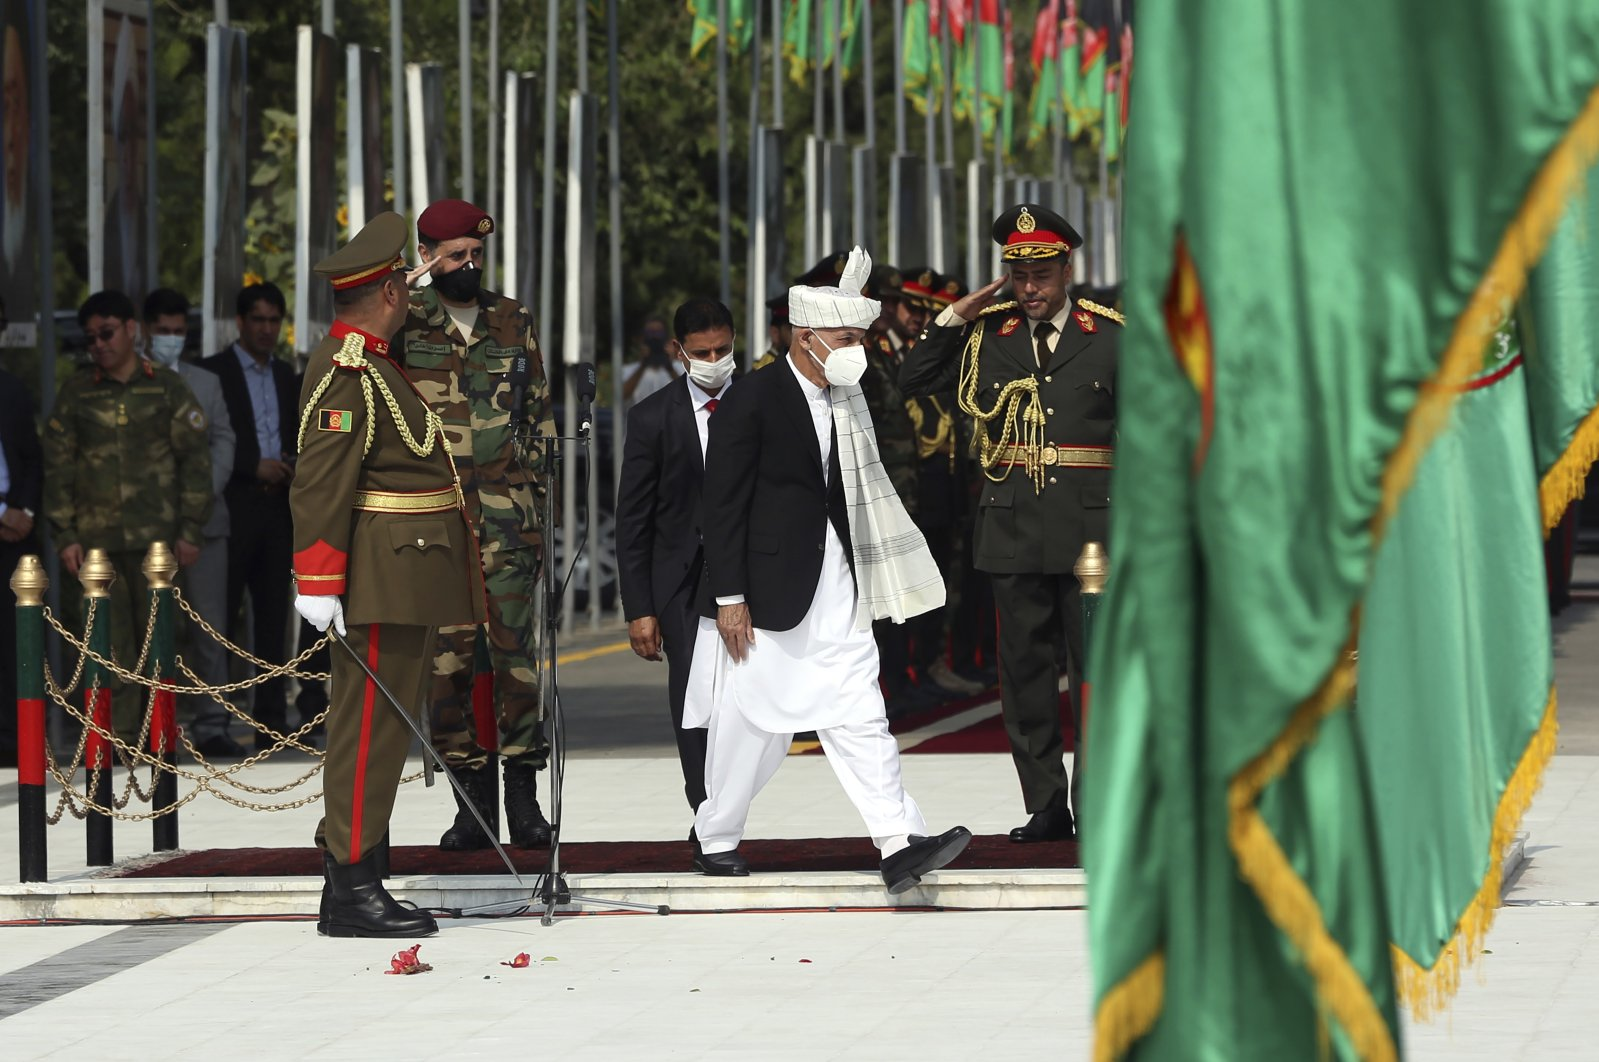 Afghan President Ashraf Ghani leaves the Independence Day celebrations at the Defense Ministry in Kabul, Afghanistan, Tuesday, Aug. 18, 2020. (AP Photo)